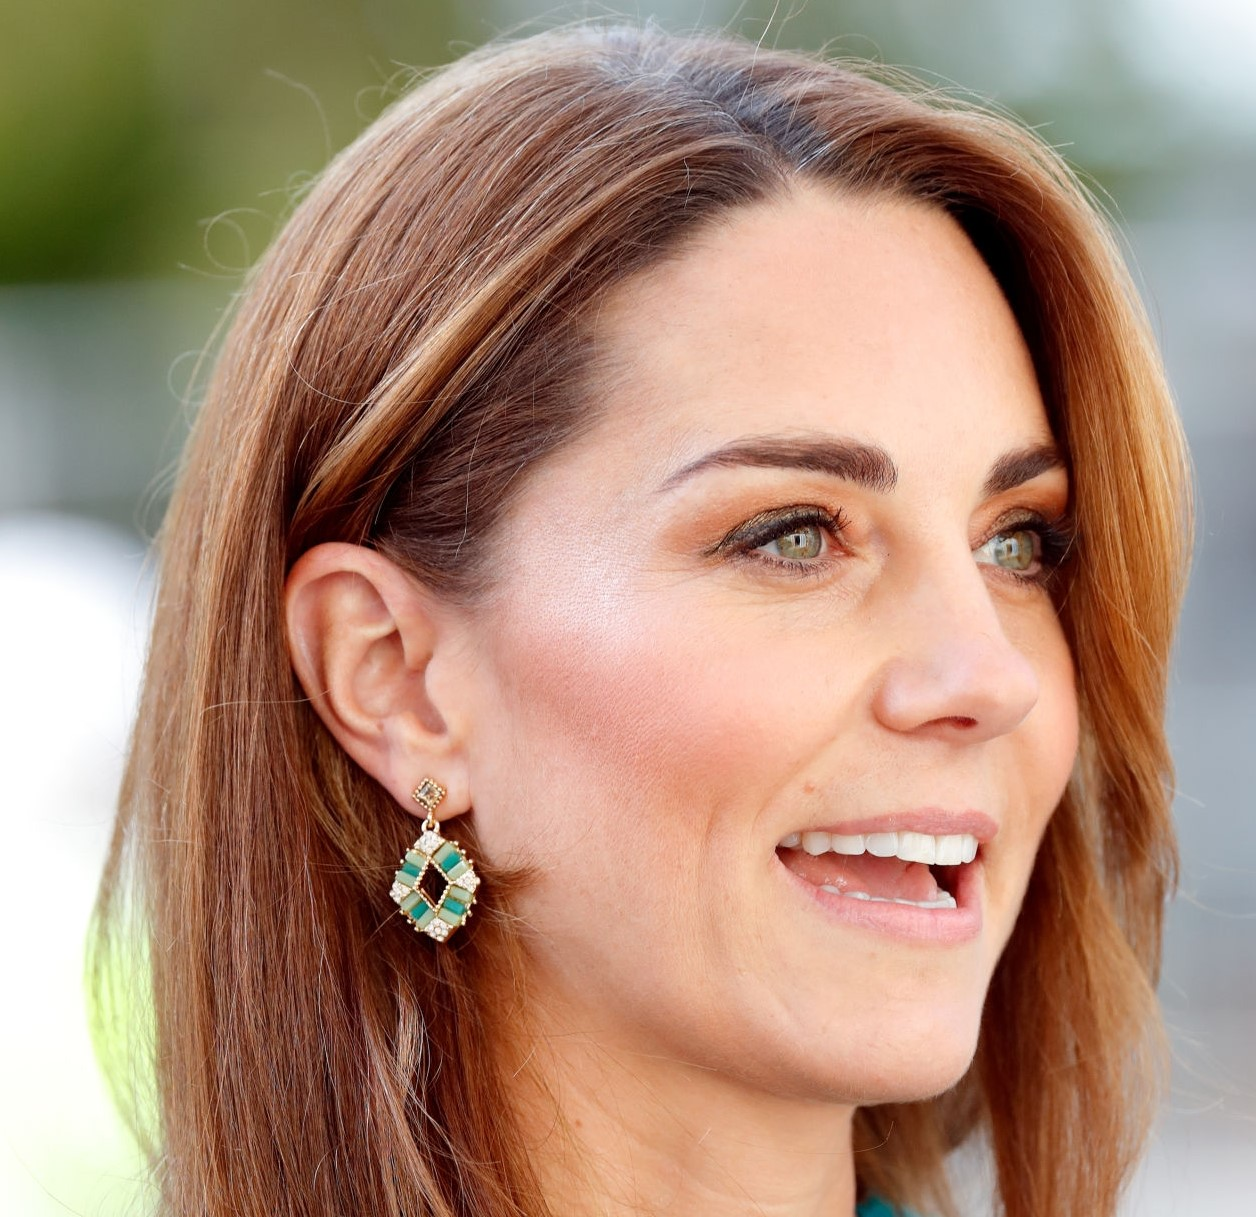 Duchess of Cambridge seen wearing Pakistani brand's Zeen earrings